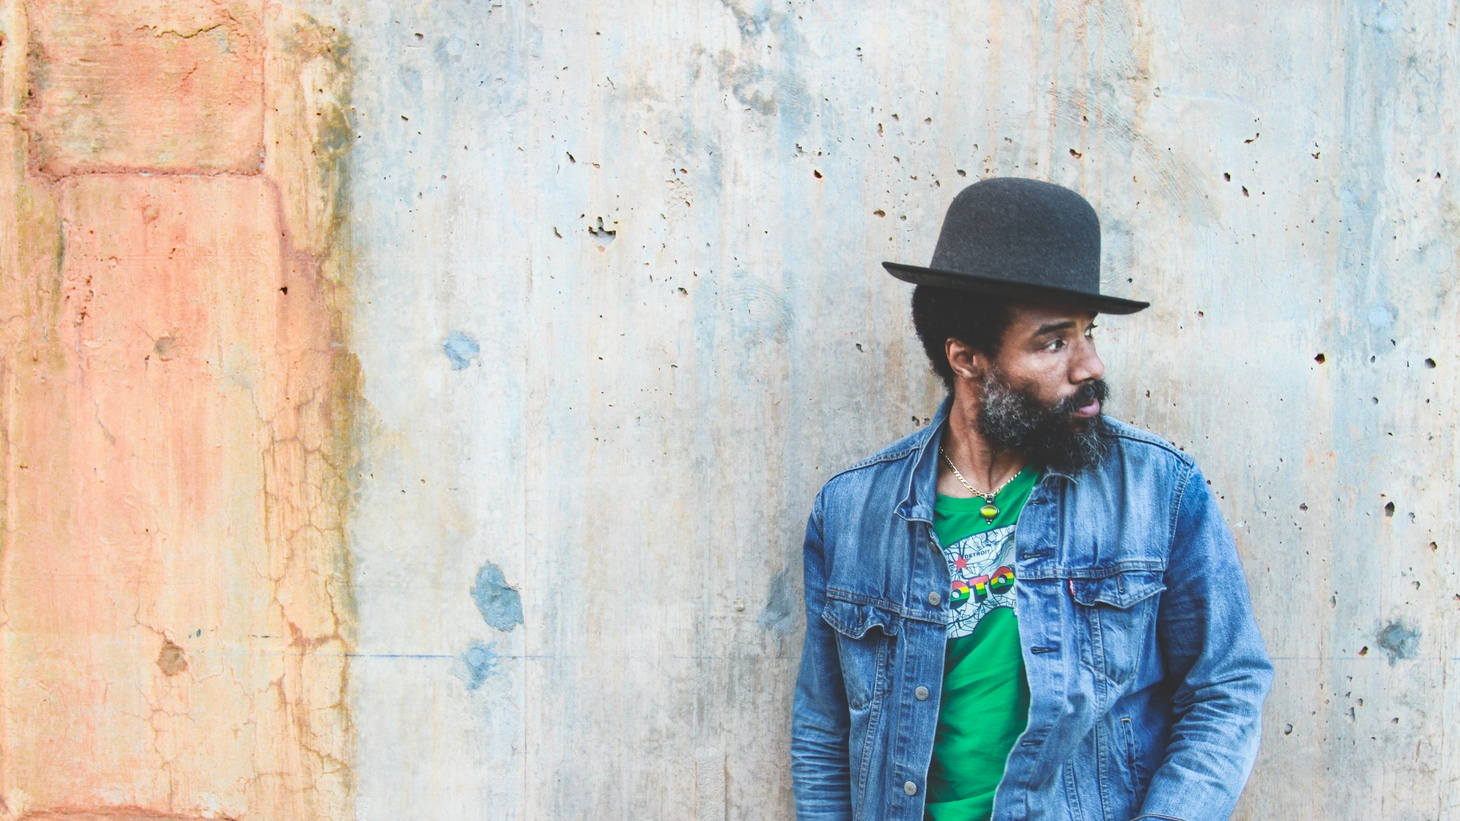 Soul troubadour Cody ChesnuTT is passionate about his music and thinks of it as medicine. He took the last four years off to concentrate on being a father and to receive more divine inspiration.